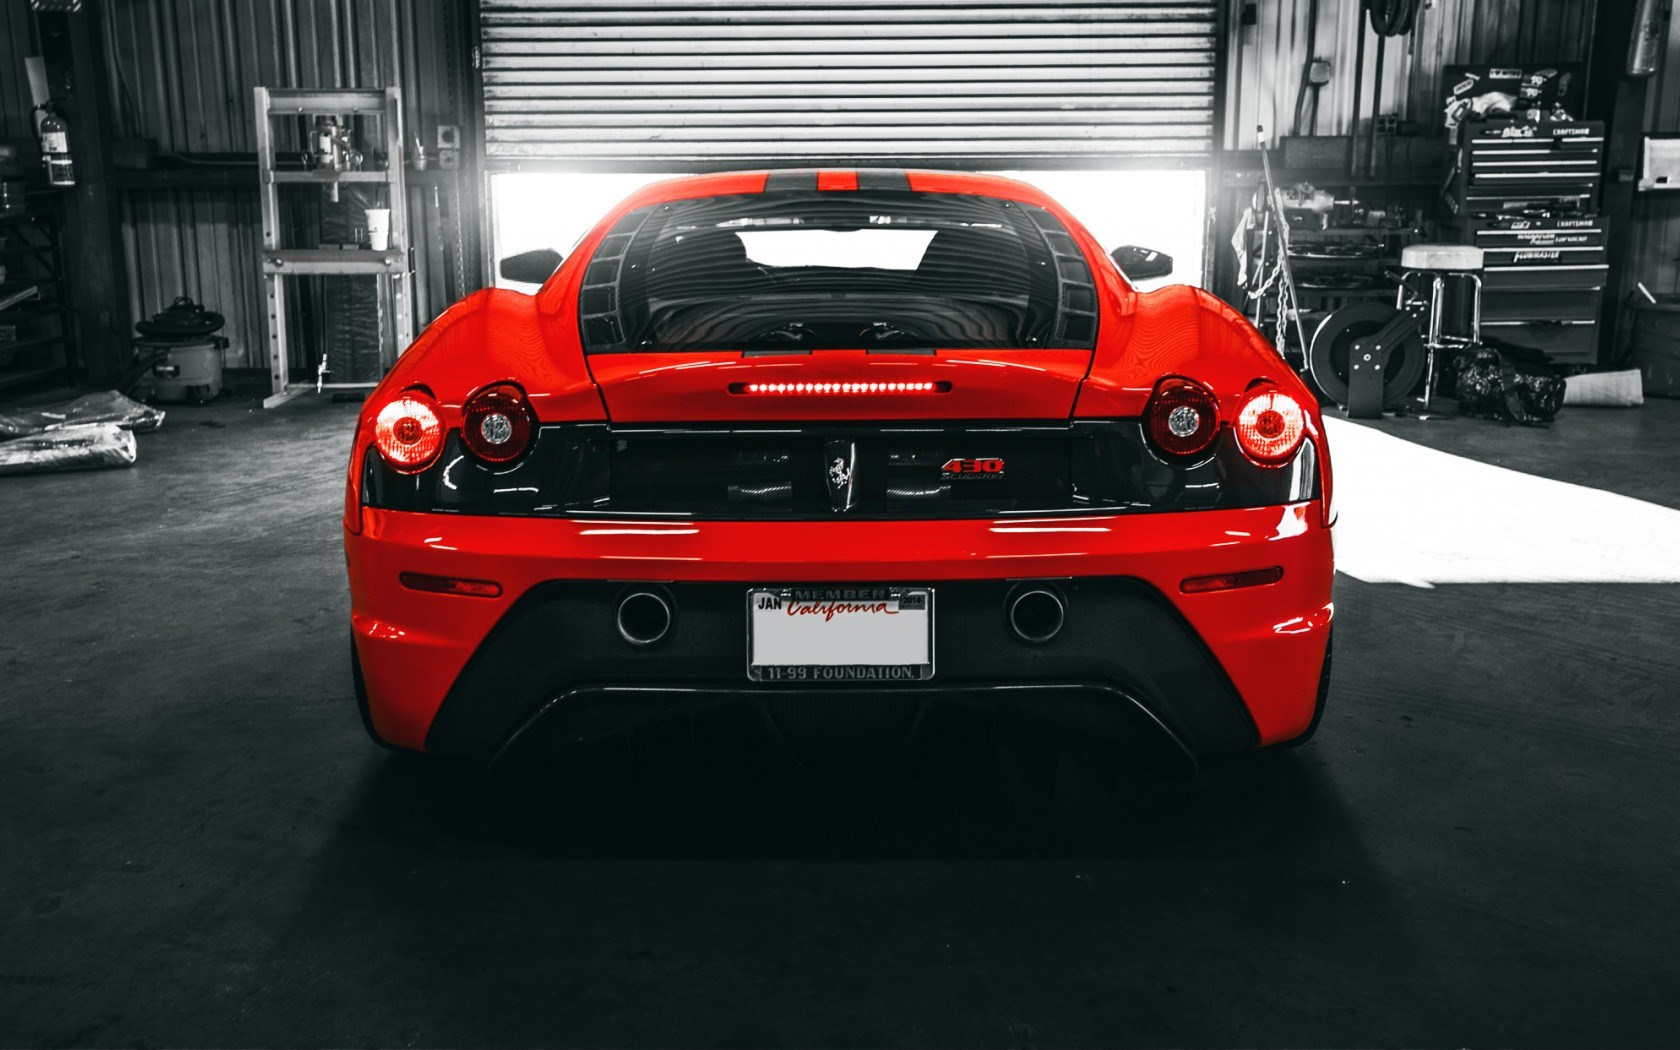 Ferrari F430 Scuderia Car Wheels Tuning Rear